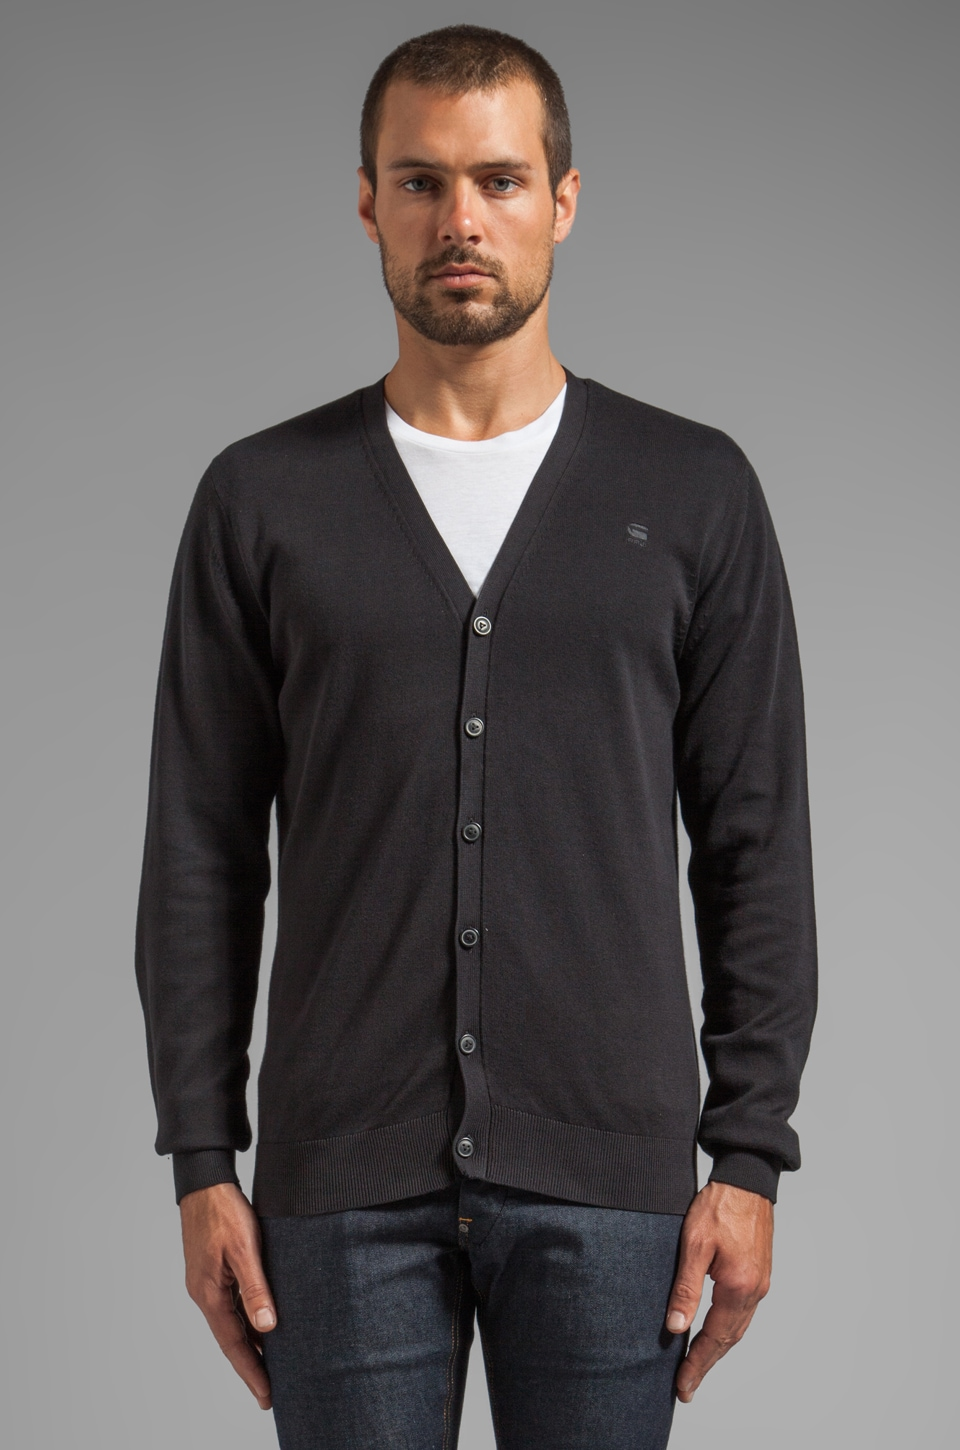 G-Star Map Cardigan in Black